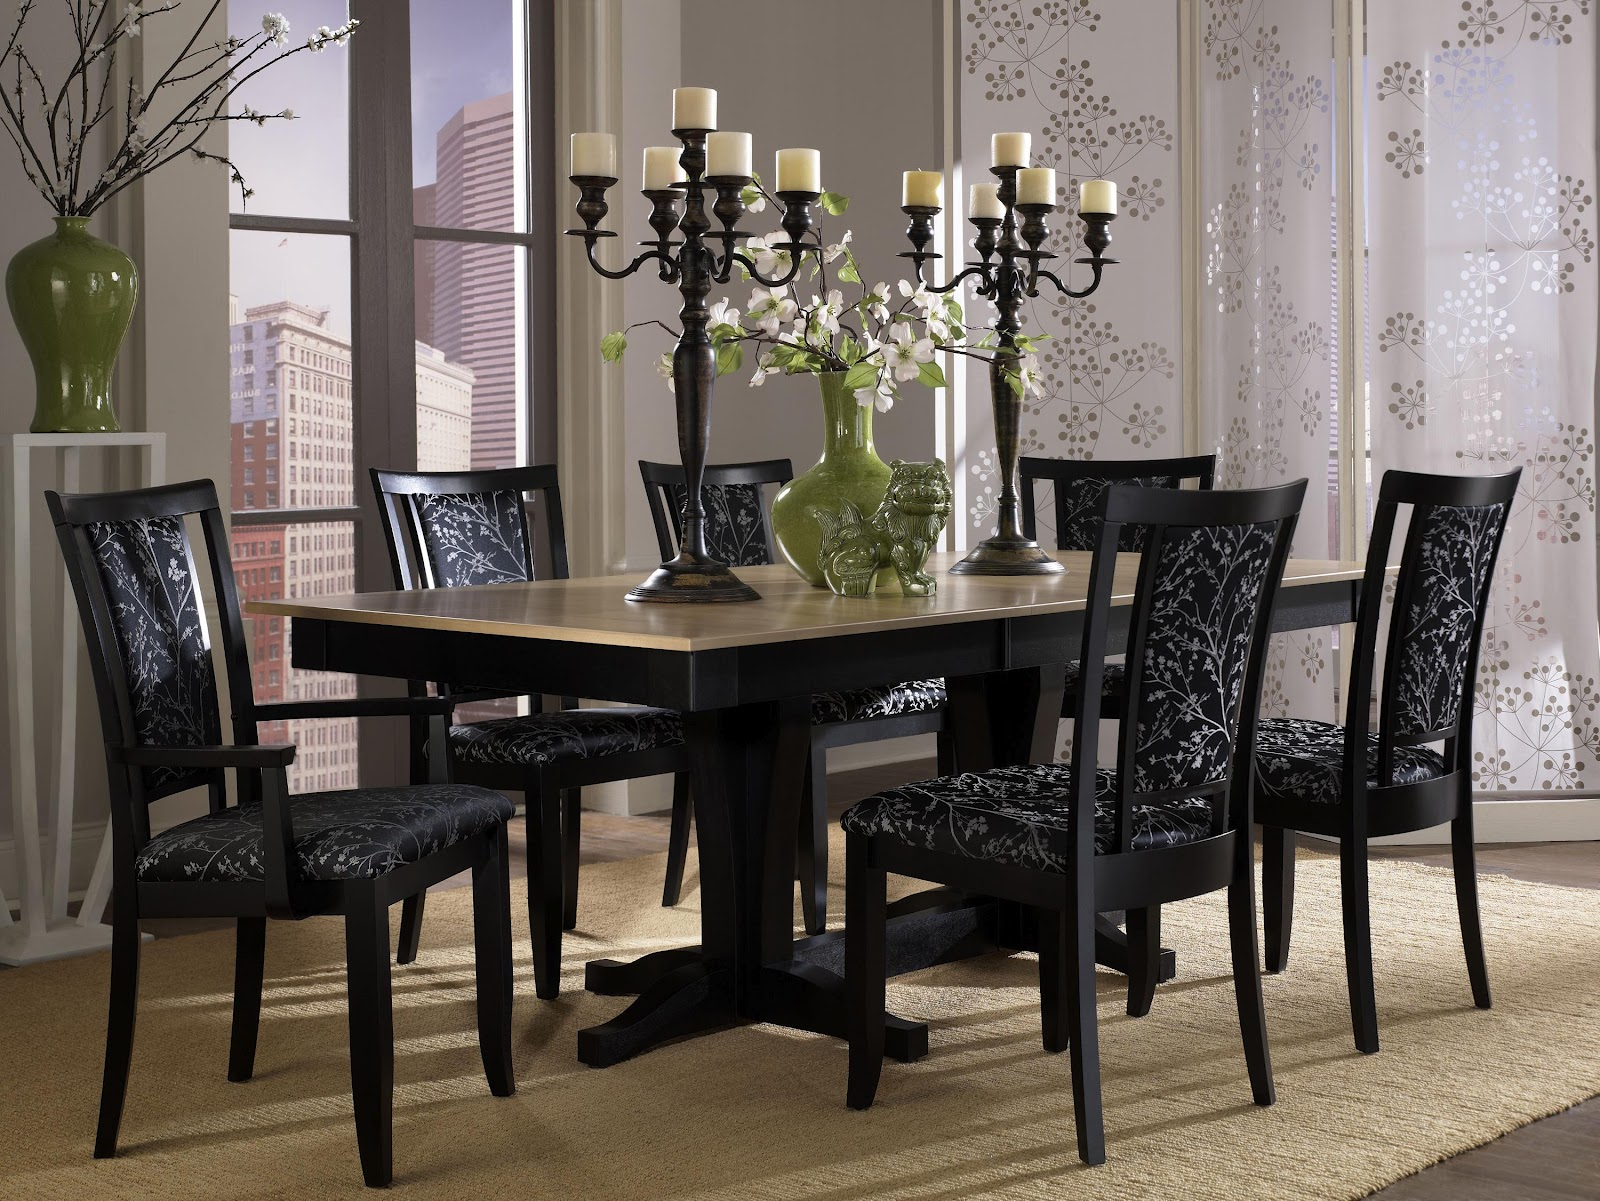 Canadel dining room sets new york dining room unique for Dining room chair set